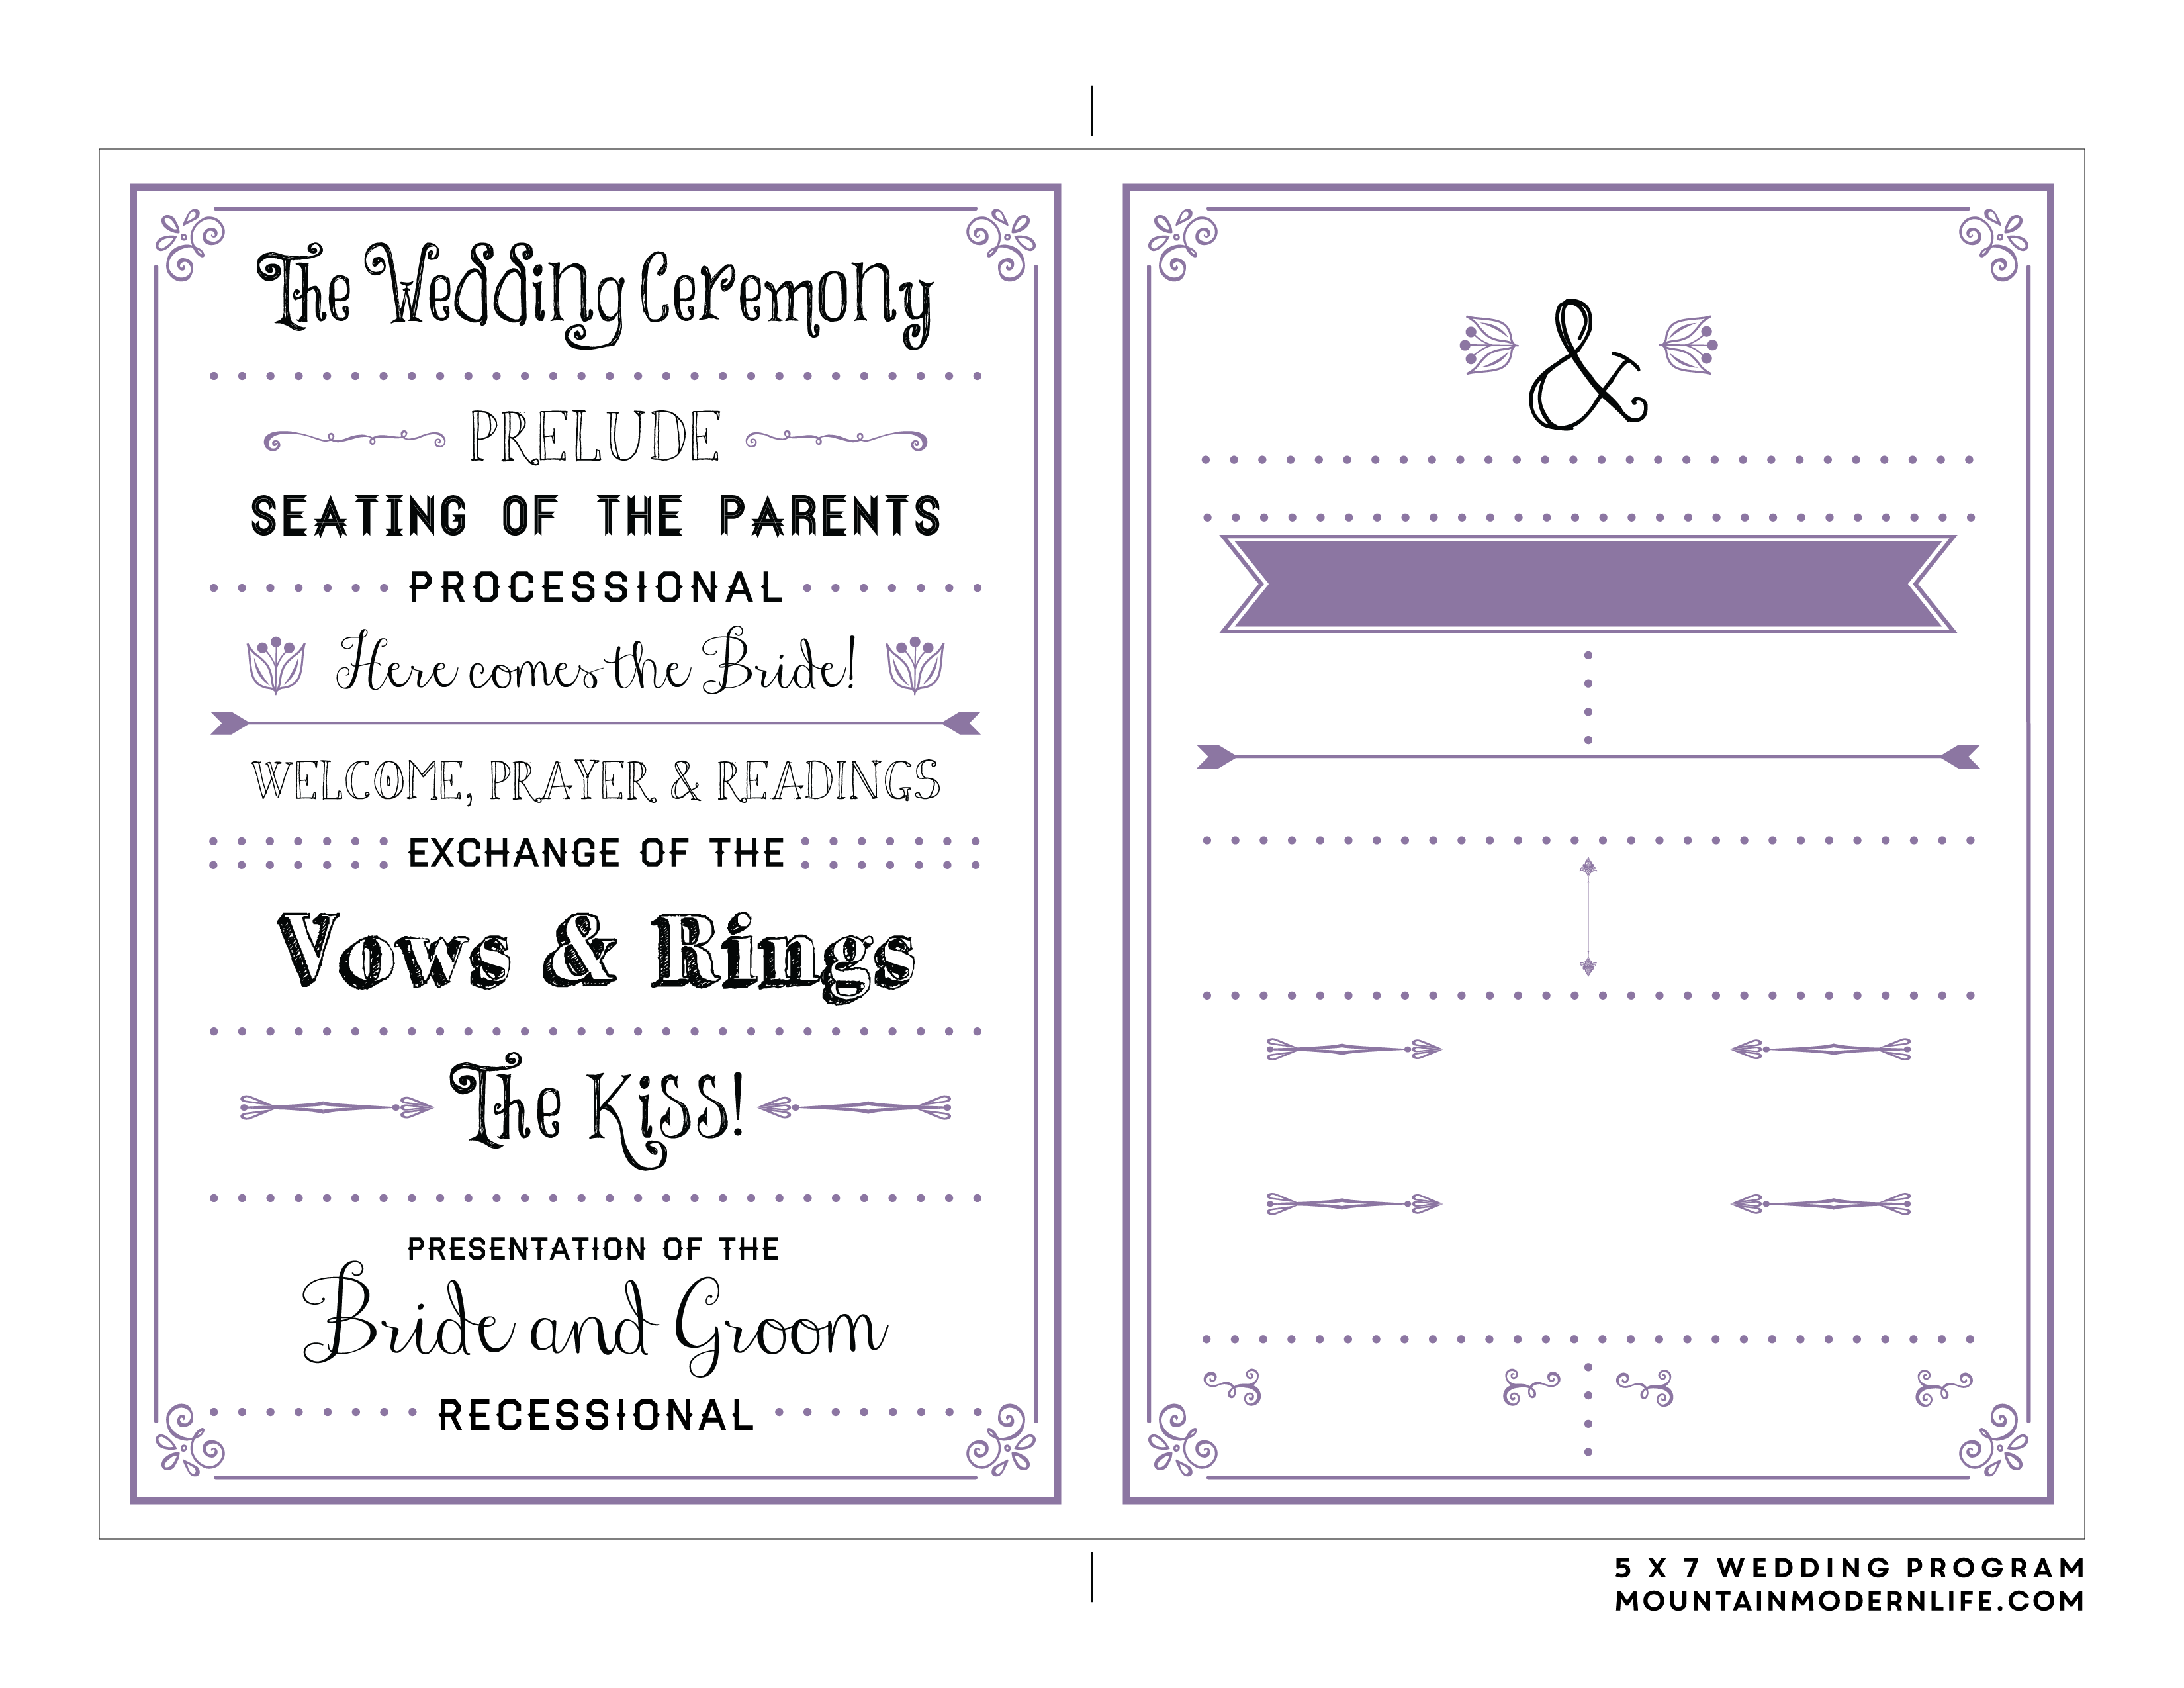 FREE Printable Wedding Program | MountainModernLife.com